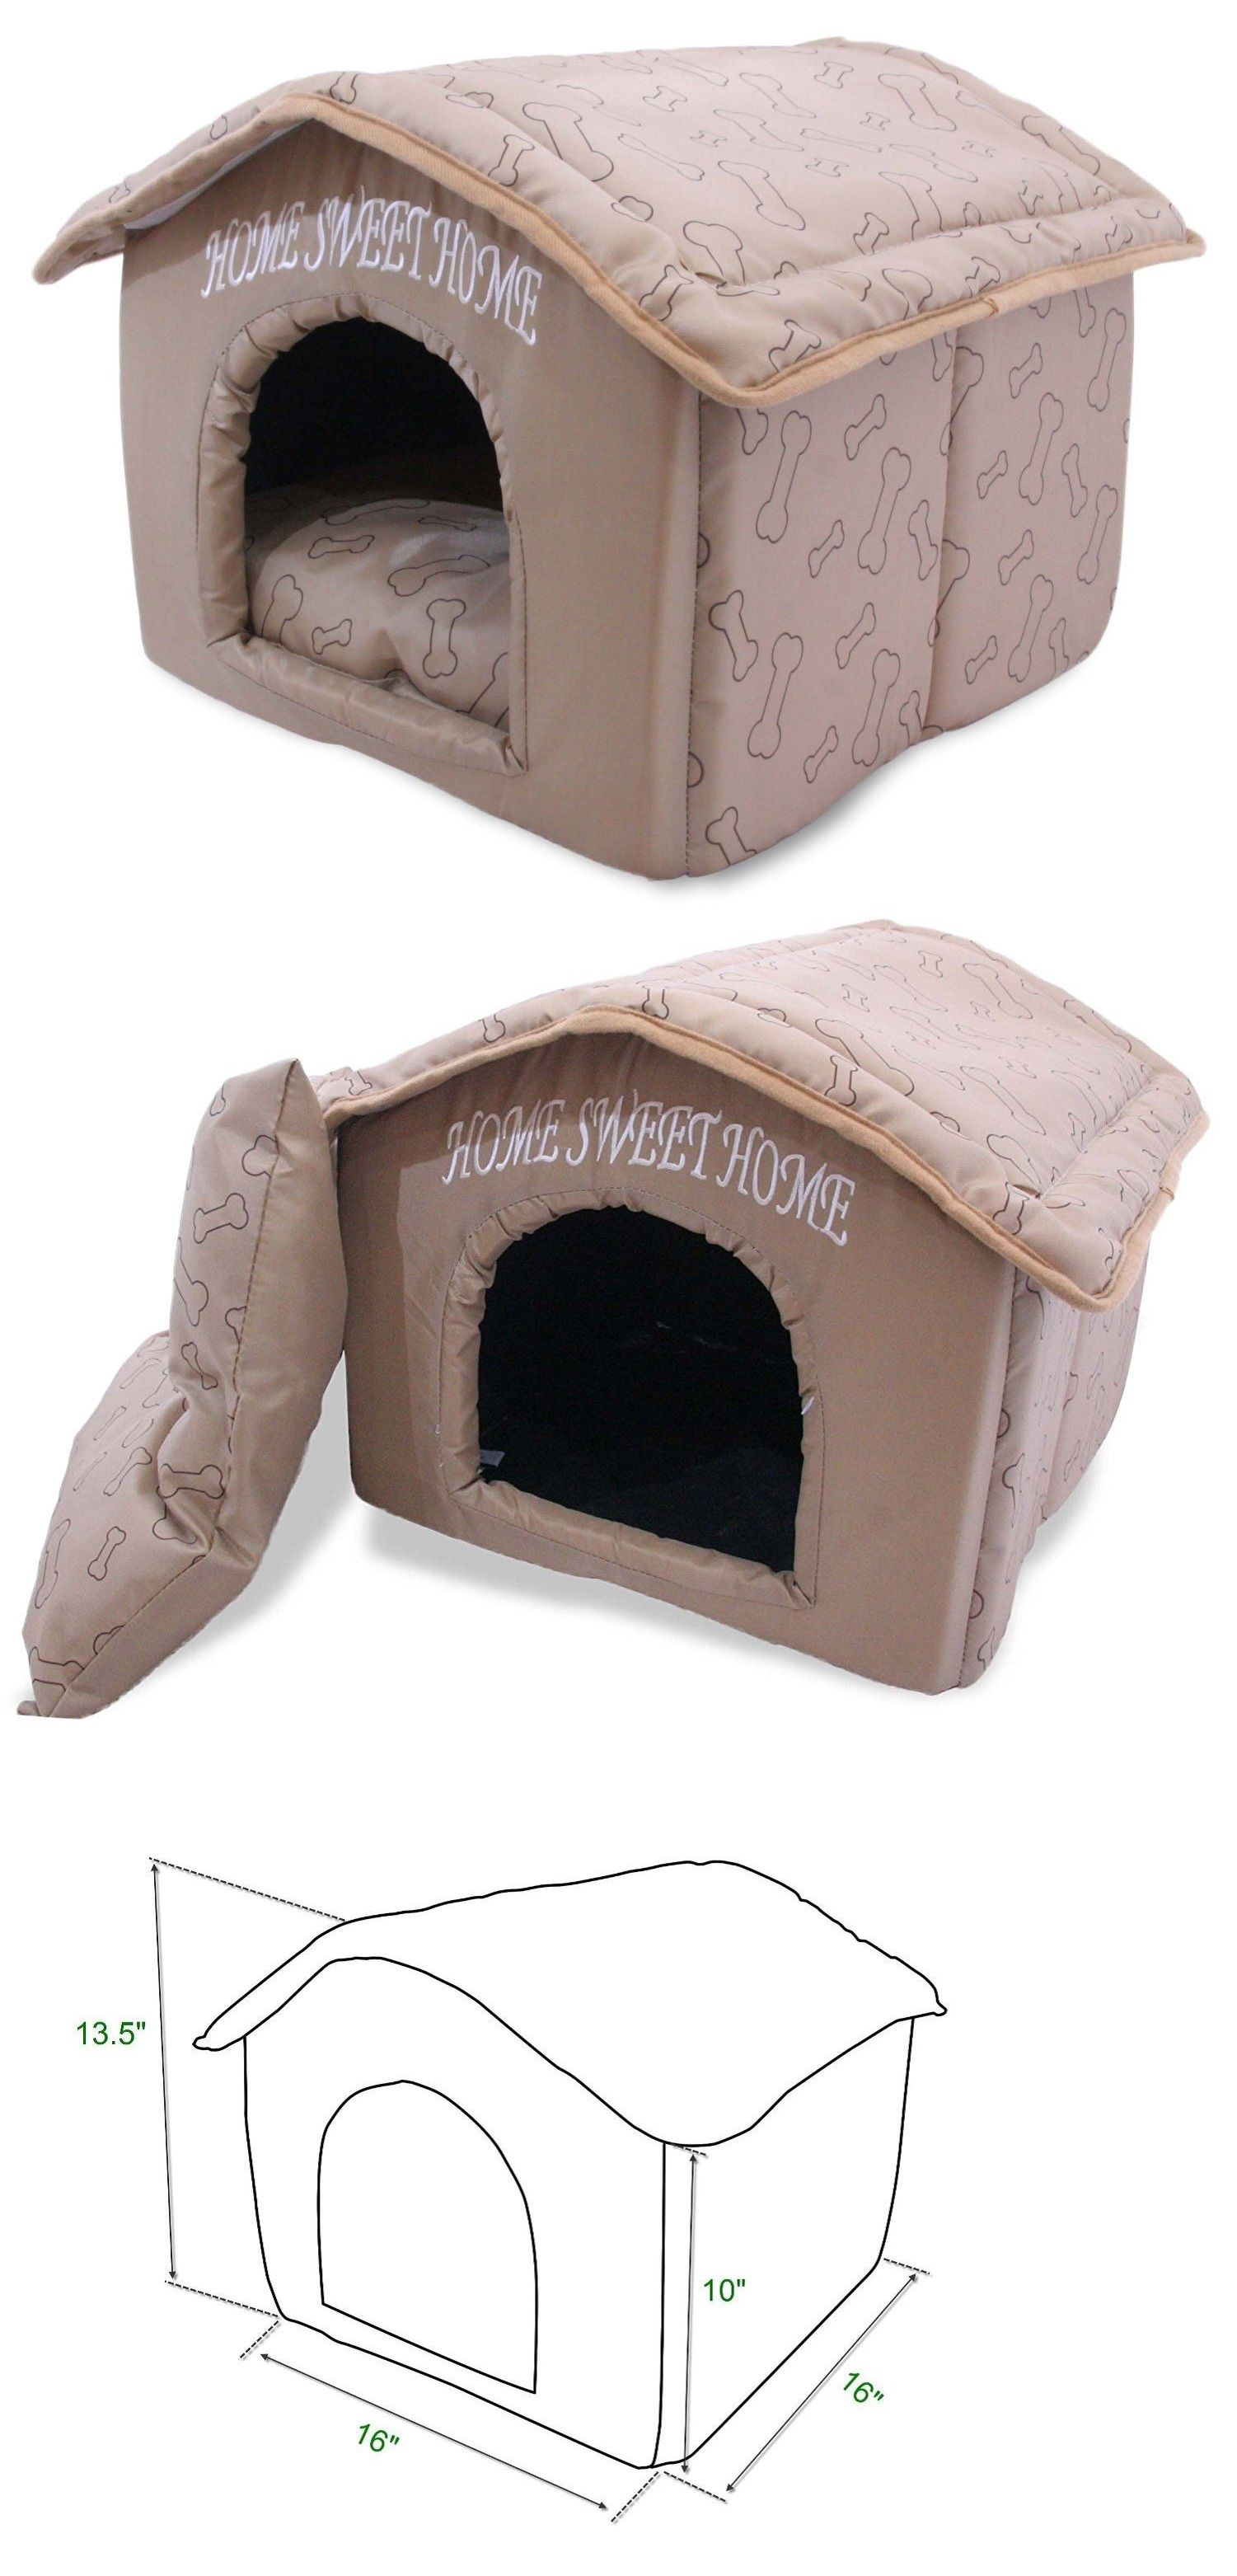 Dog Houses 108884 Indoor Dog House Kennel Plush Warm Portable Pet Bed Washable Small Puppy Cat Buy It Now Only 38 0 Indoor Dog House Small Puppies Dog House [ 3125 x 1501 Pixel ]